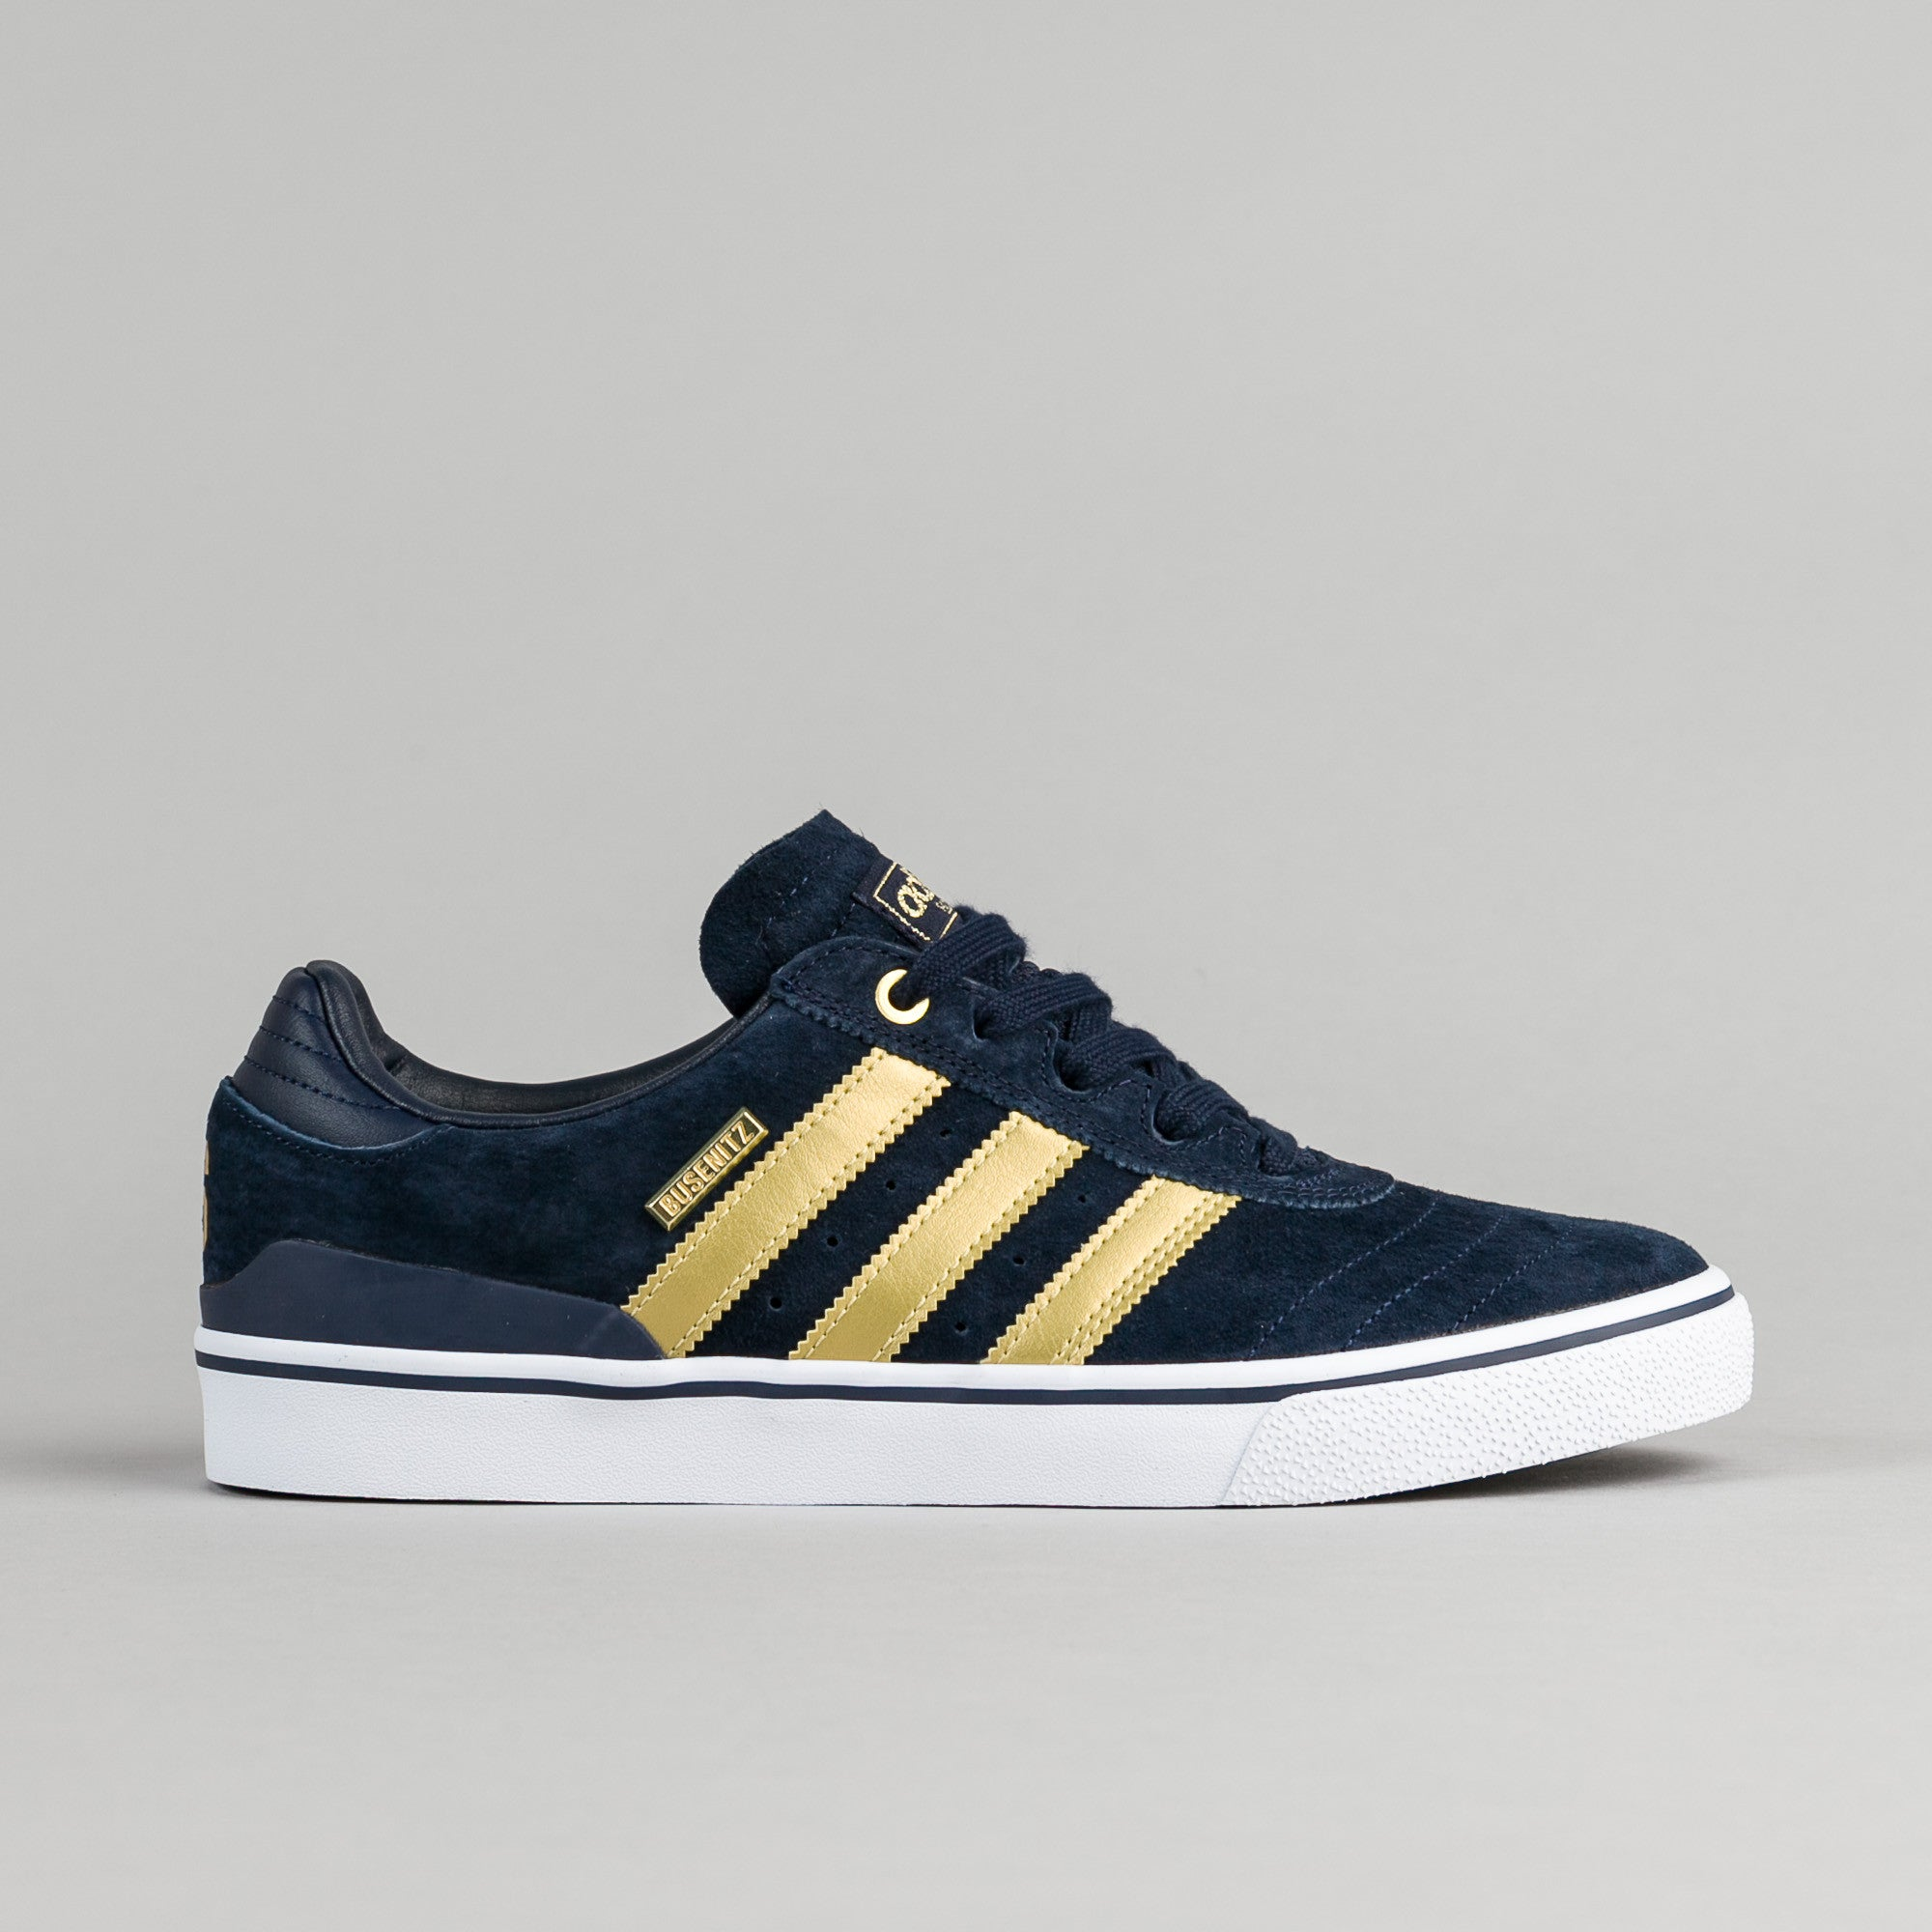 Adidas Busenitz Vulc ADV 10 Year Anniversary Shoes - Collegiate Navy / Metallic Gold / White